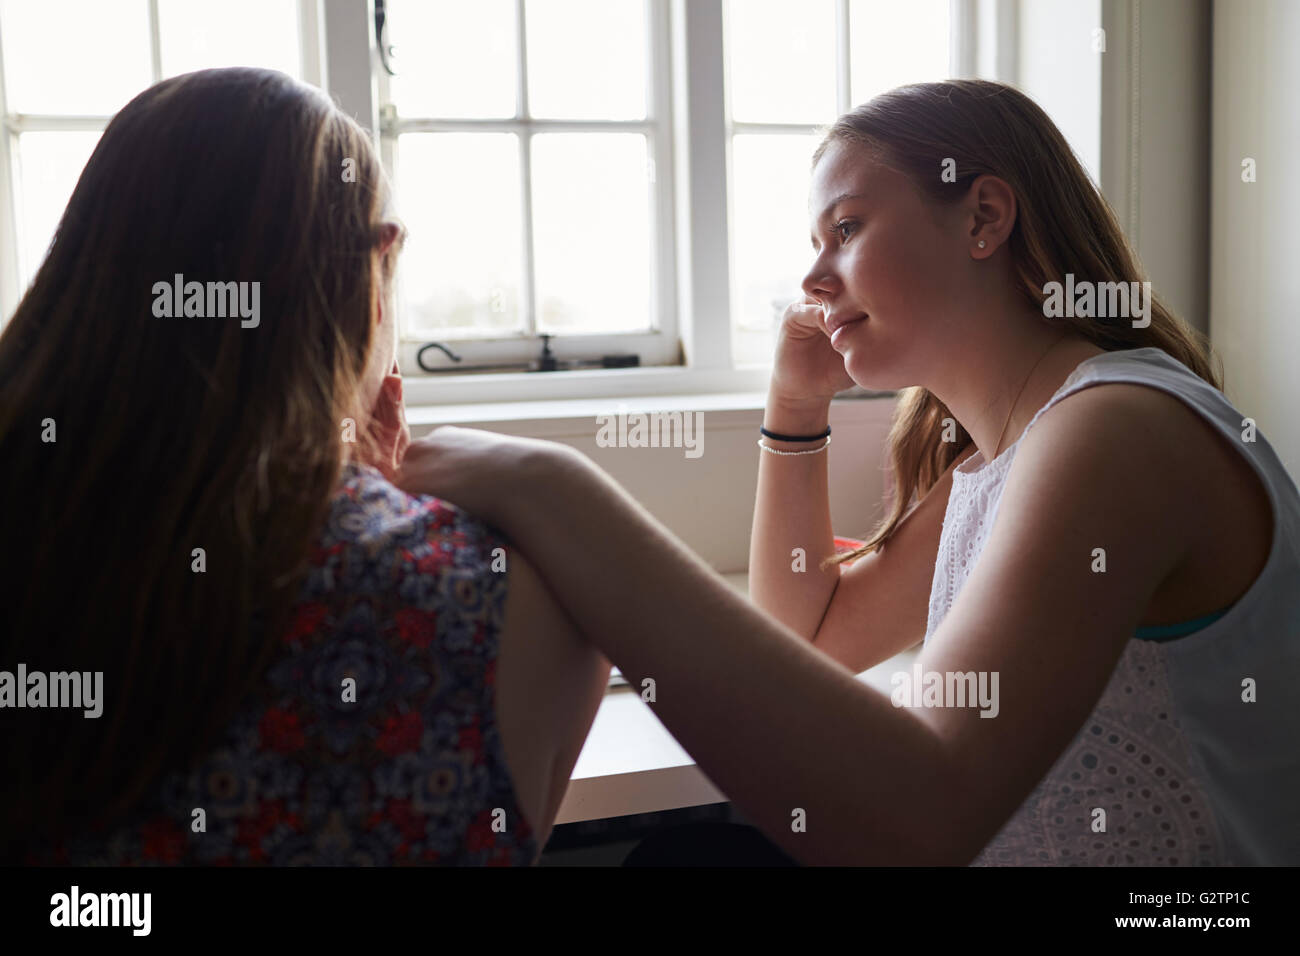 Teenage Girl Comforting Friend Suffering With Depression - Stock Image